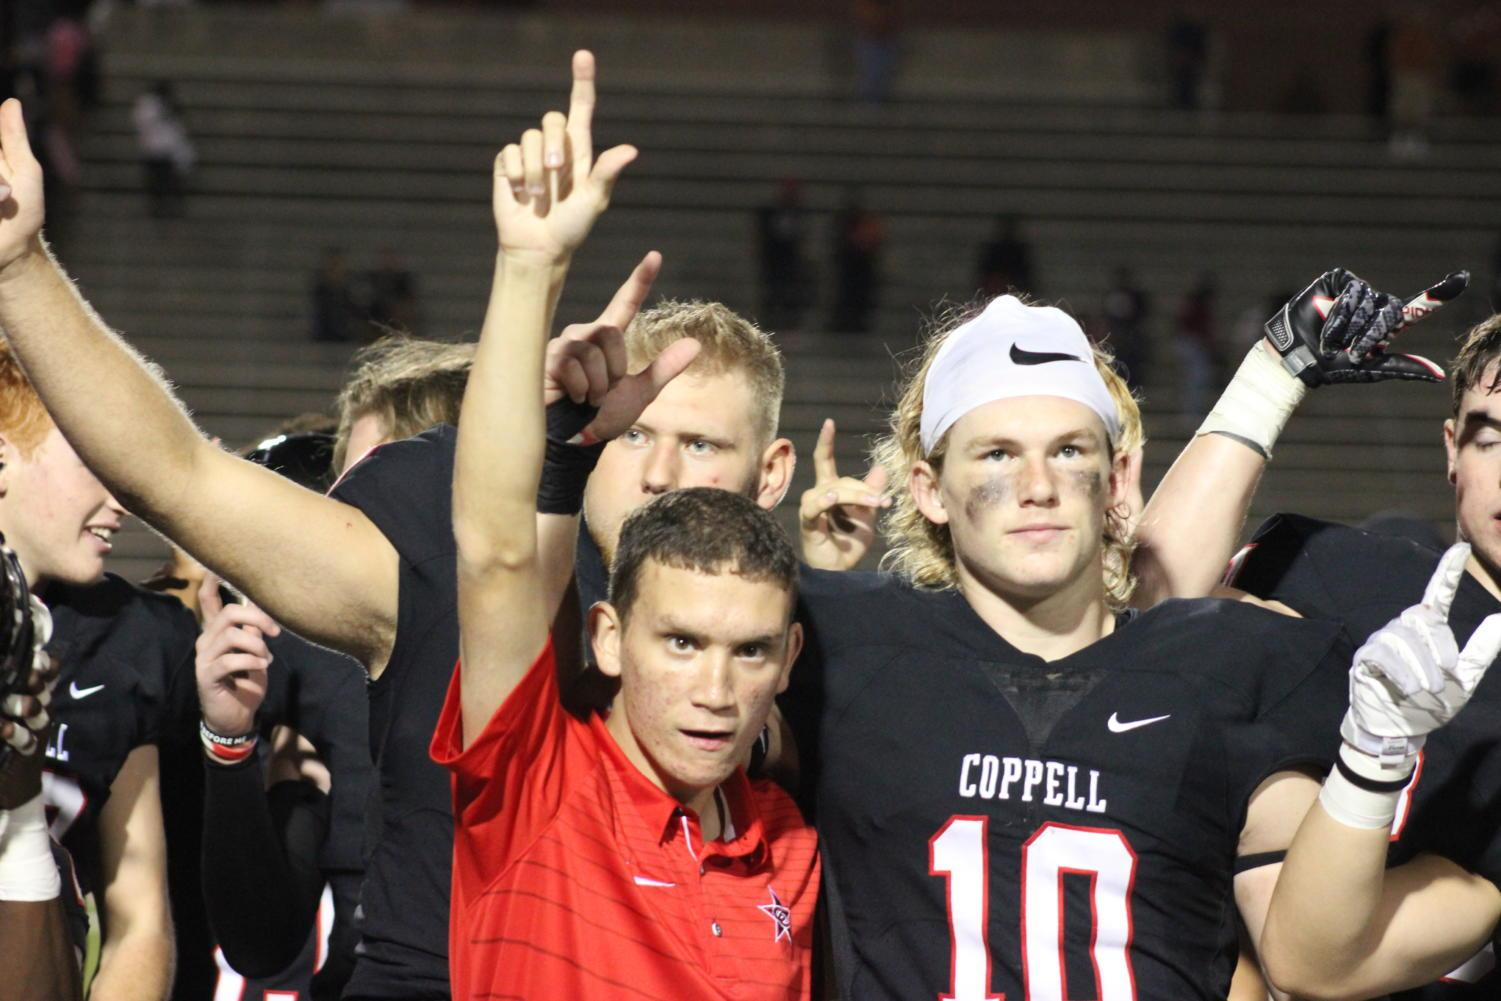 The Coppell Cowboys football team lines up for the school alma mater following its 55-14 victory over W.T. White on Friday at Buddy Echols Field. Coppel junior outside linebacker Jay Dempsey stands with assistant football coach Cole Bryant.